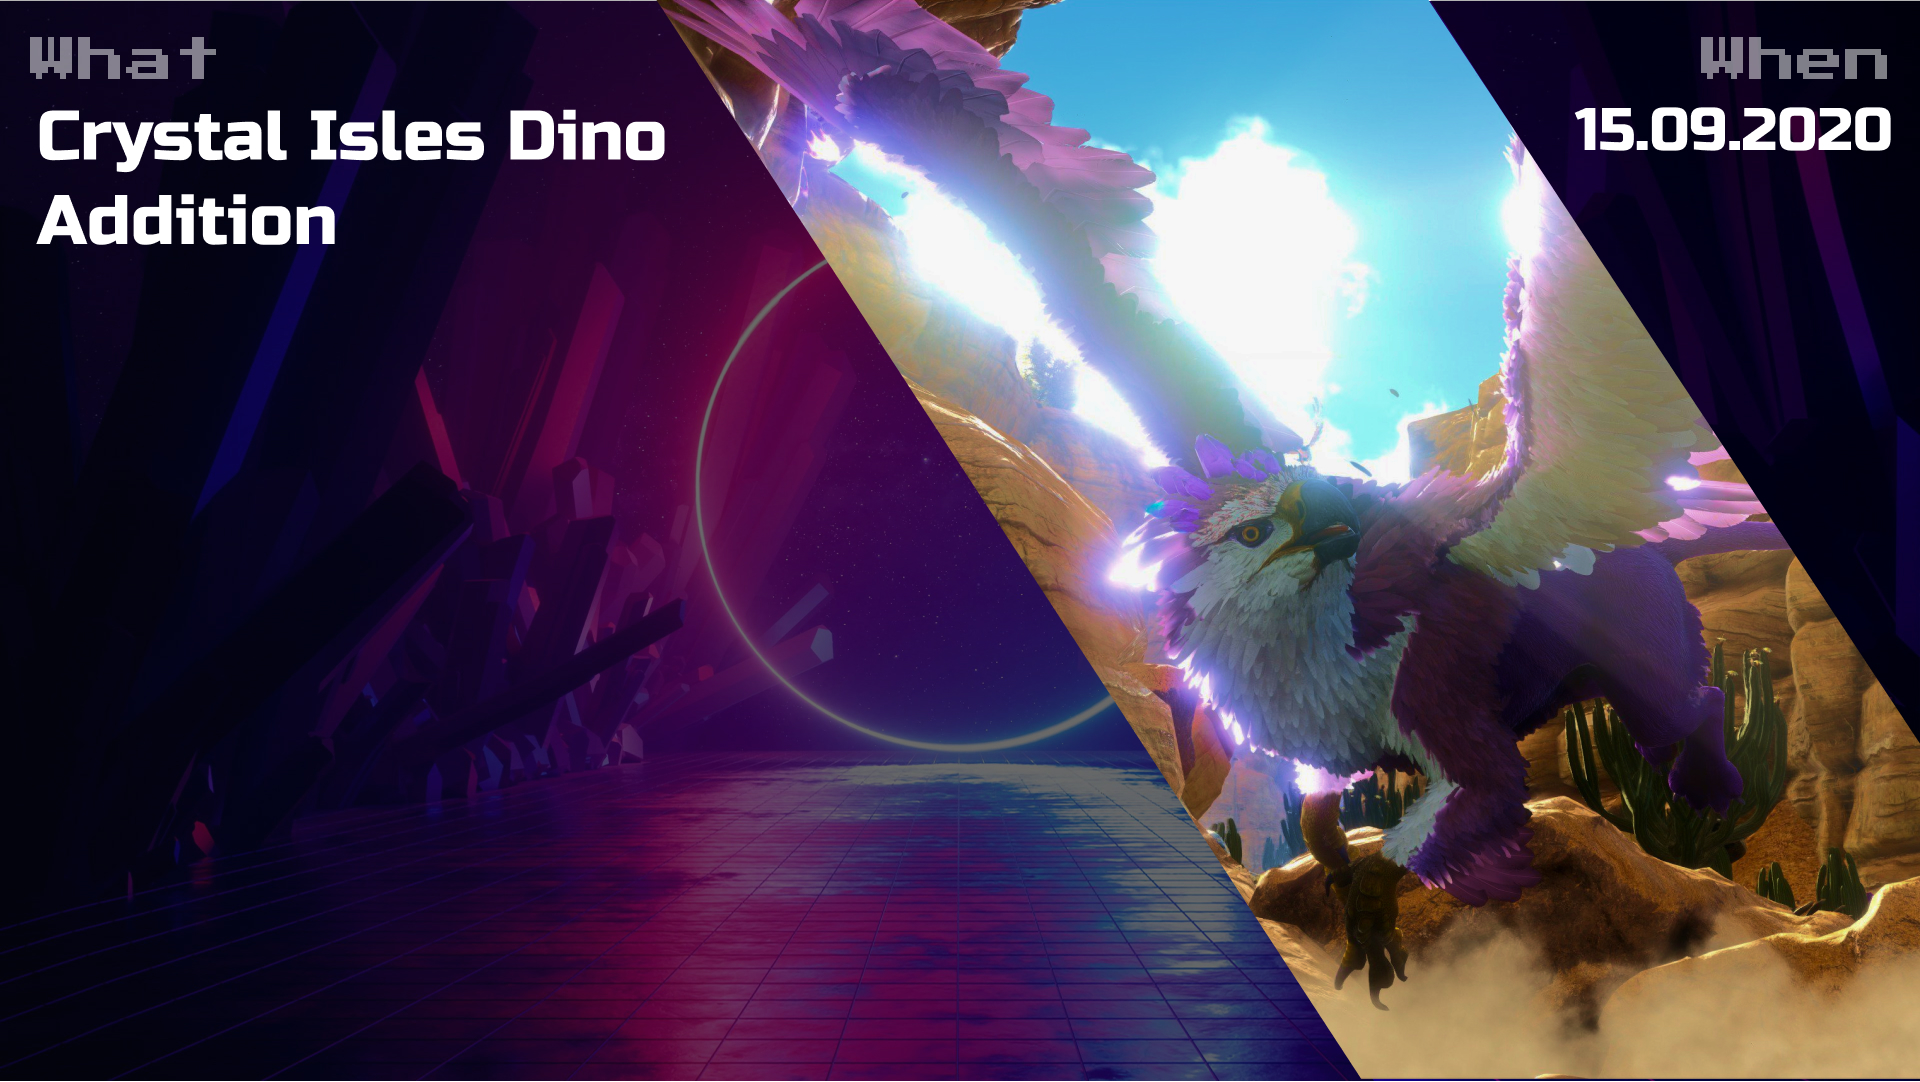 ARK: Crystal Isles Dino Addition Mod